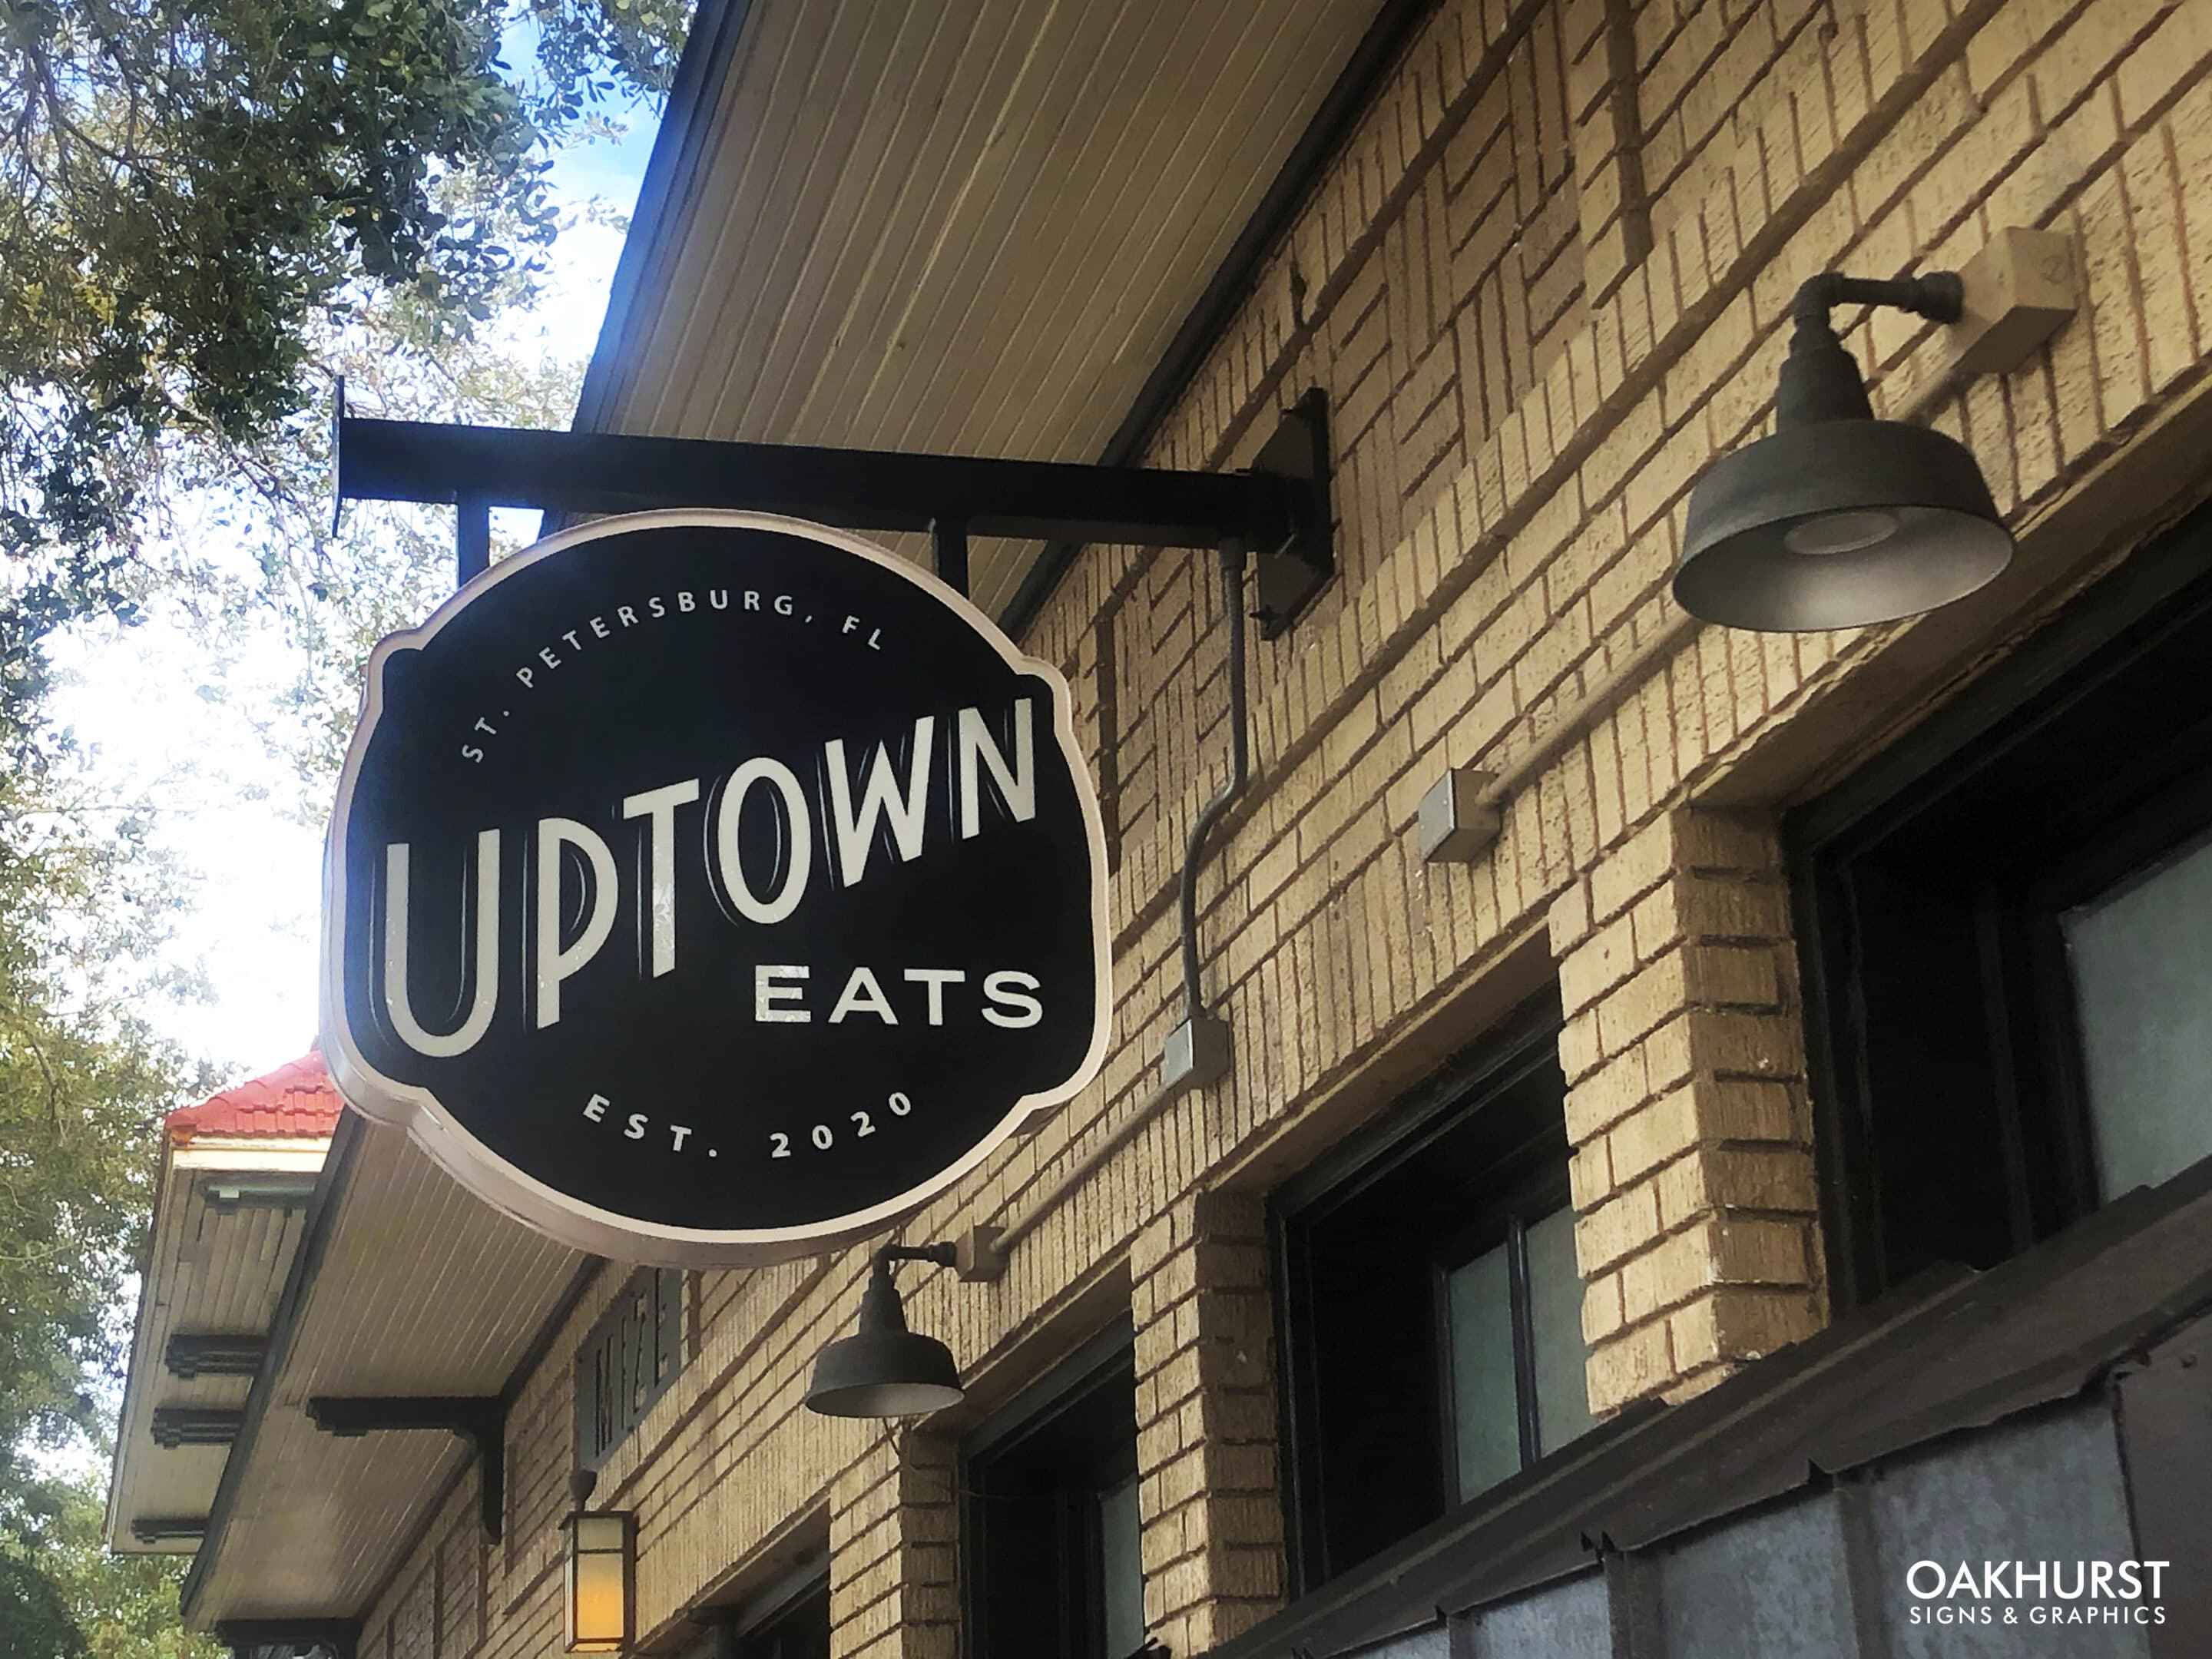 Uptown eats exterior blade sign on building